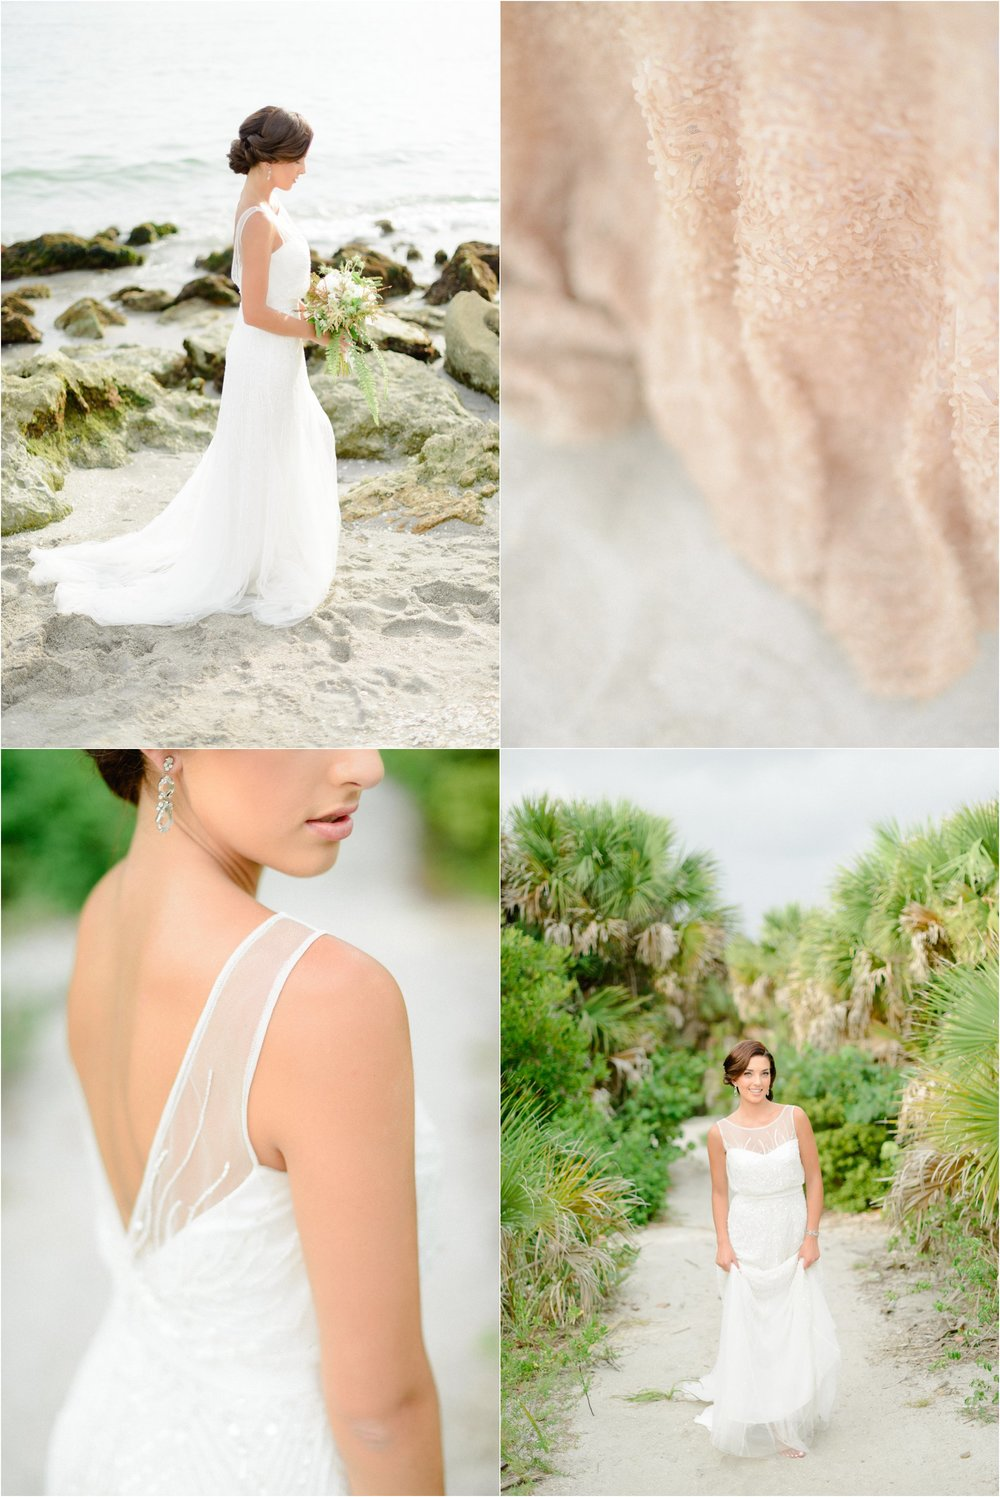 Occasions Beach Bridal_Rustic White002.jpg